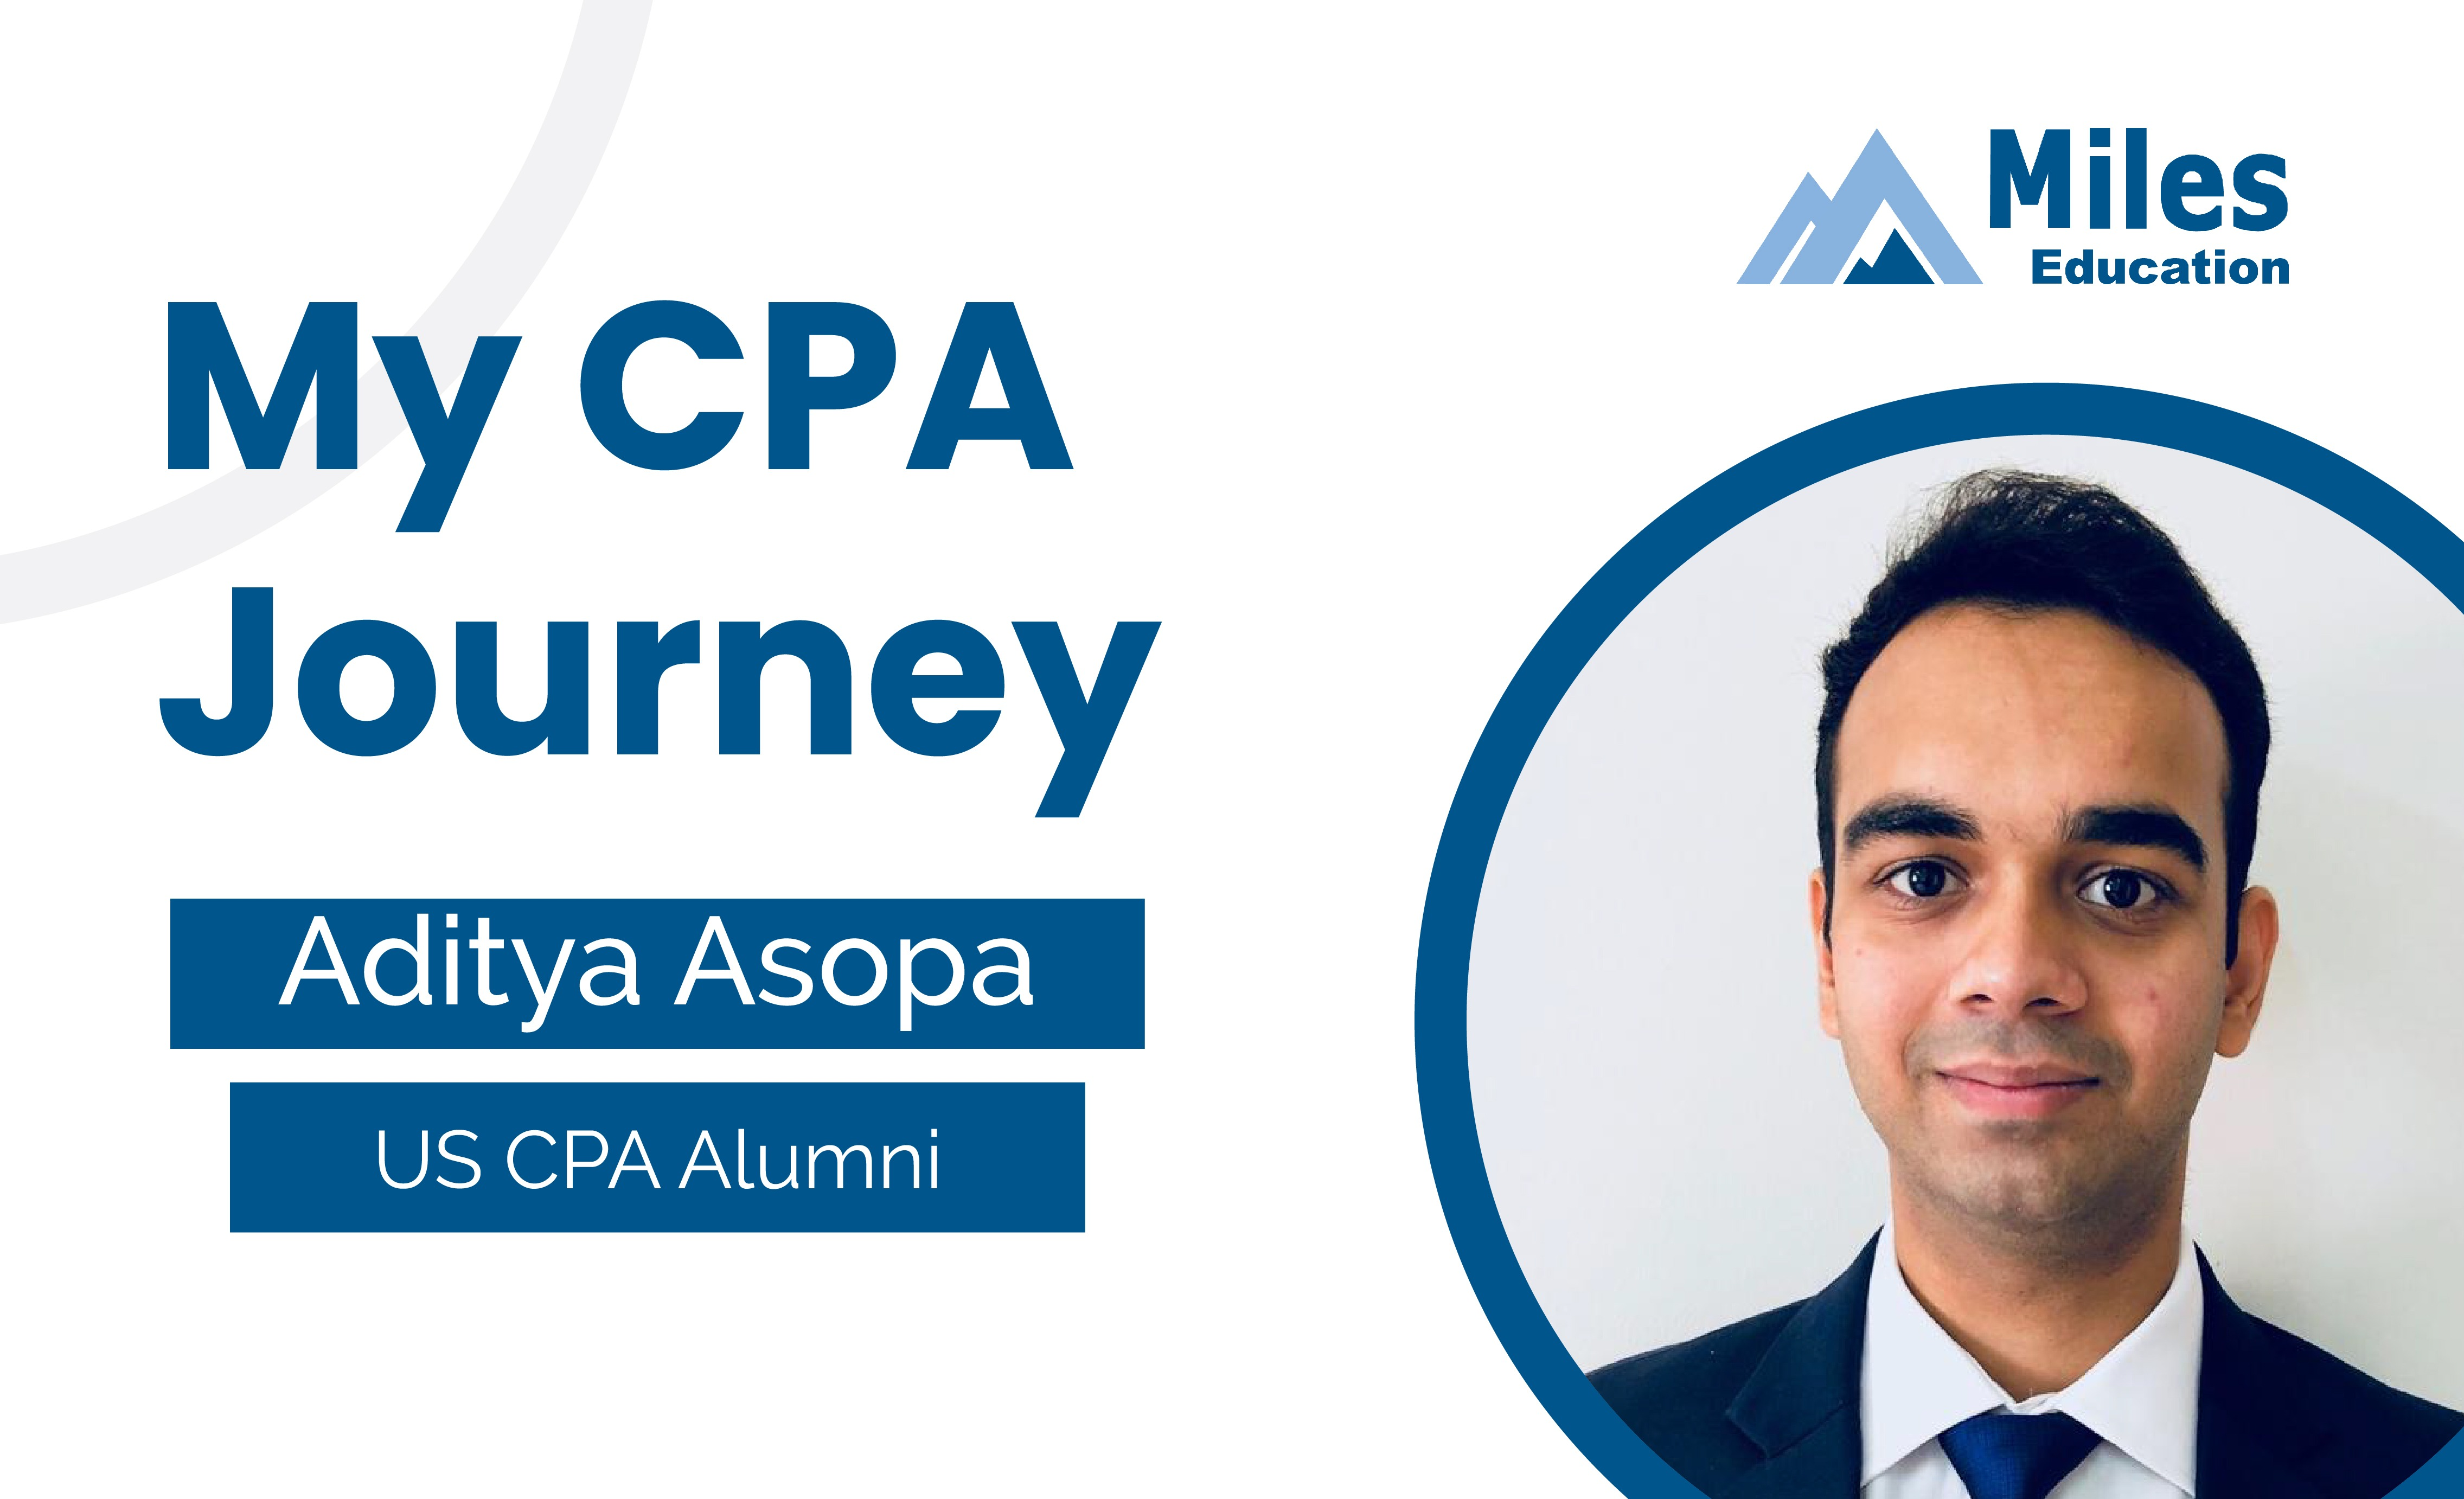 My CPA Journey Aditya Asopa